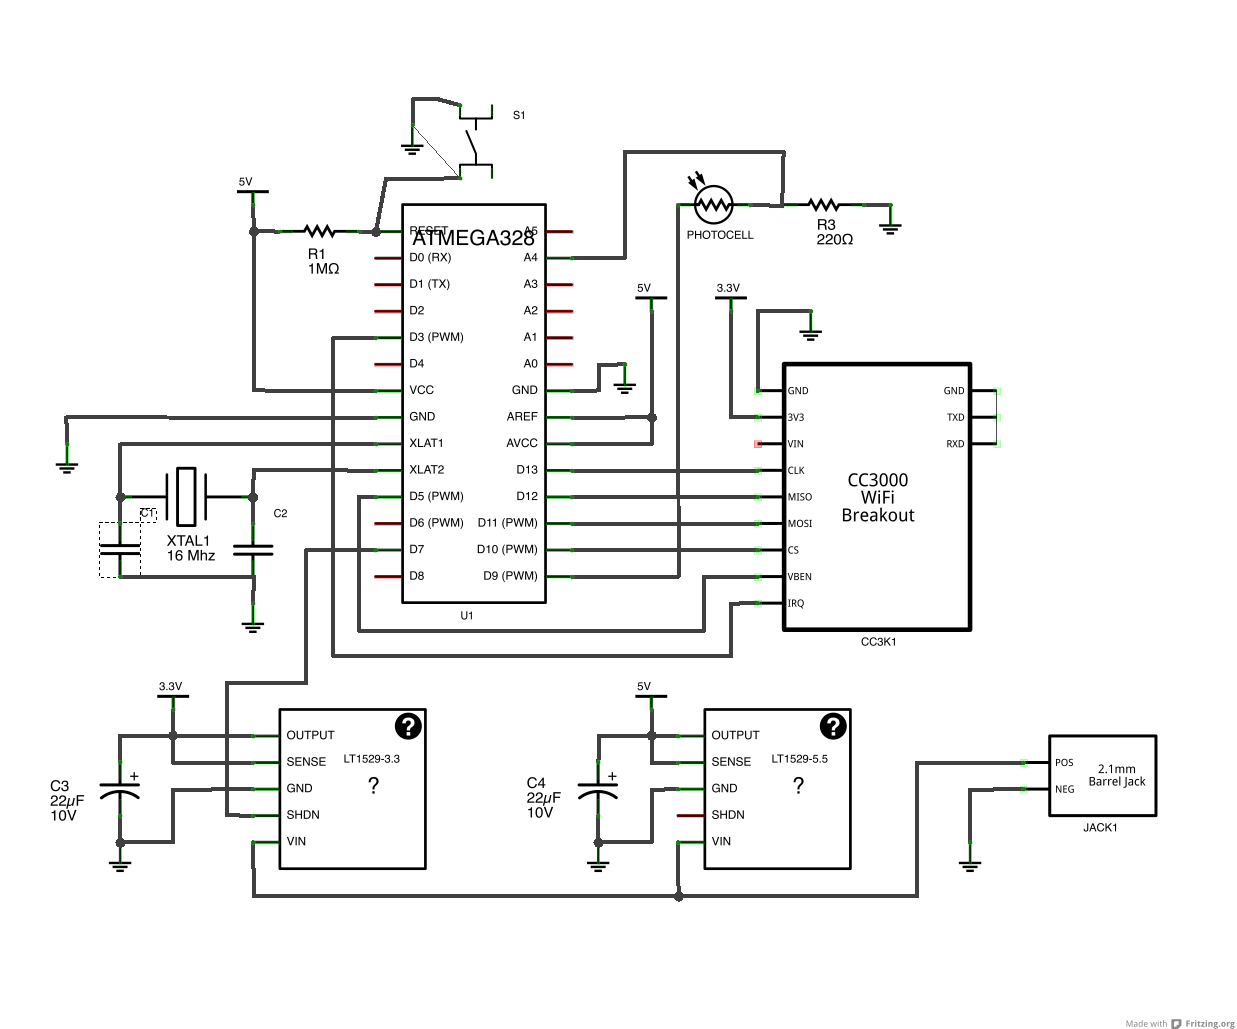 microcontrollers_Example3_schematic.png